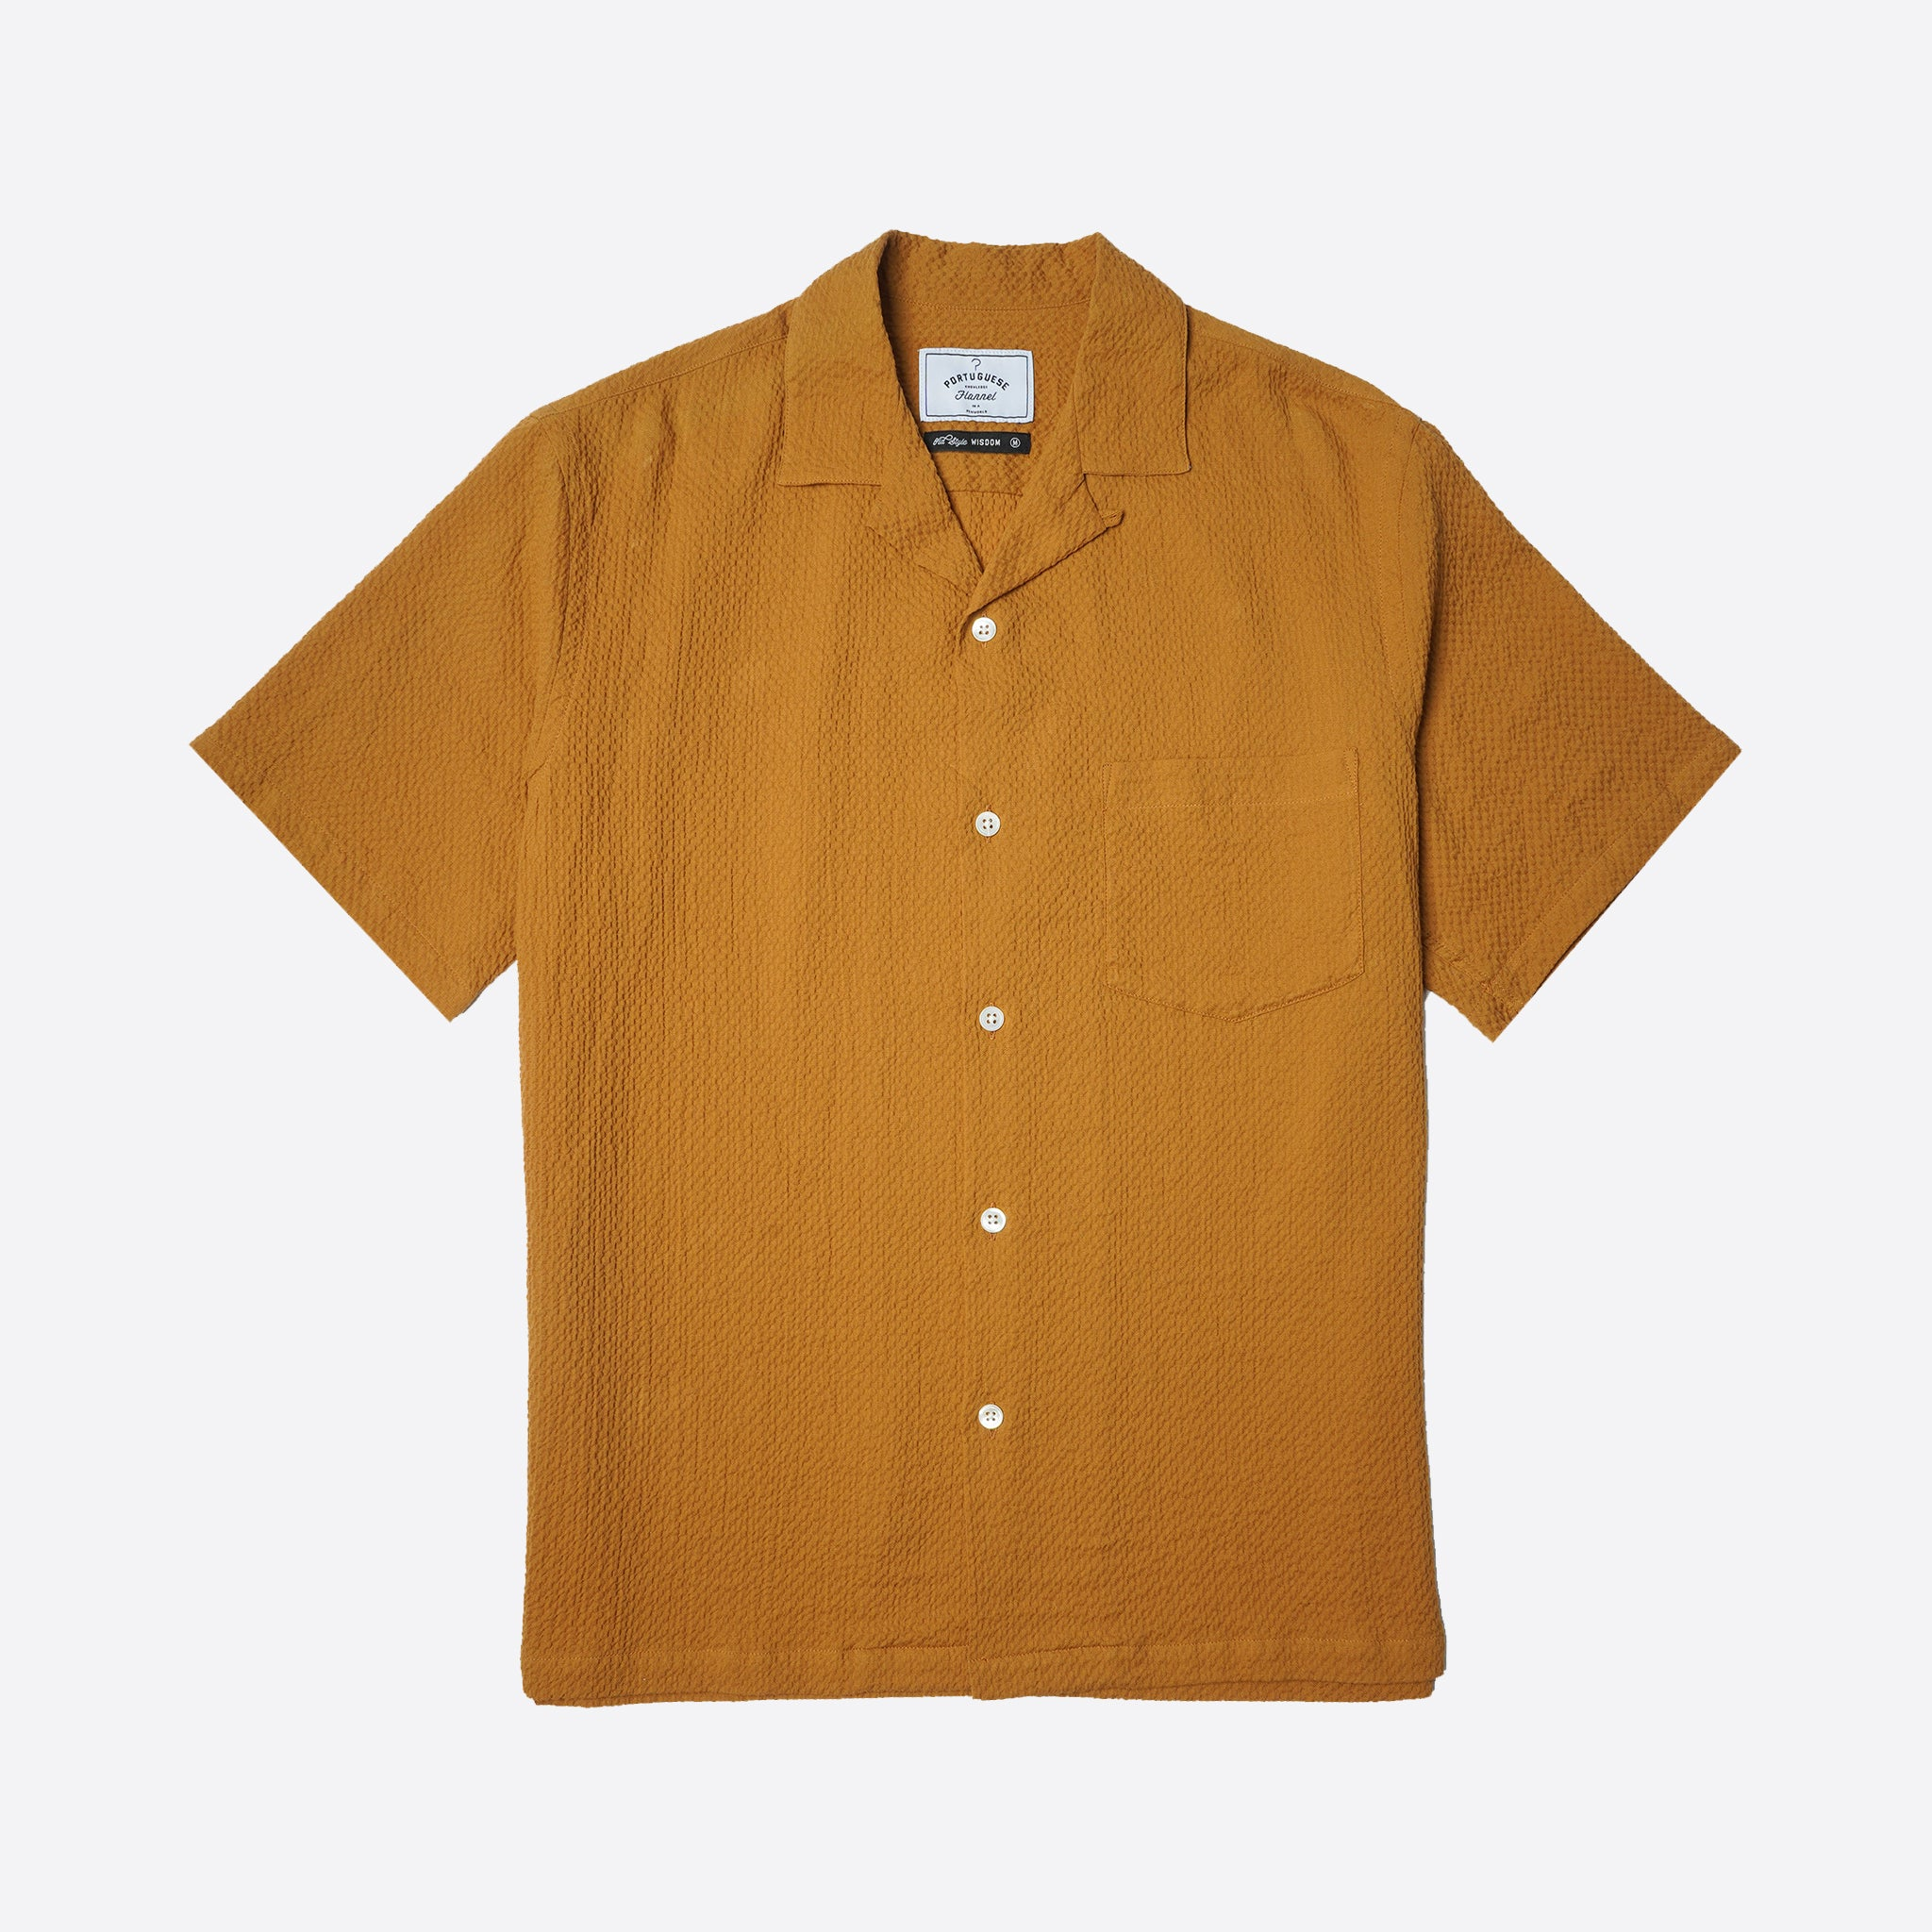 Portuguese Flannel Toasted Flame Shirt